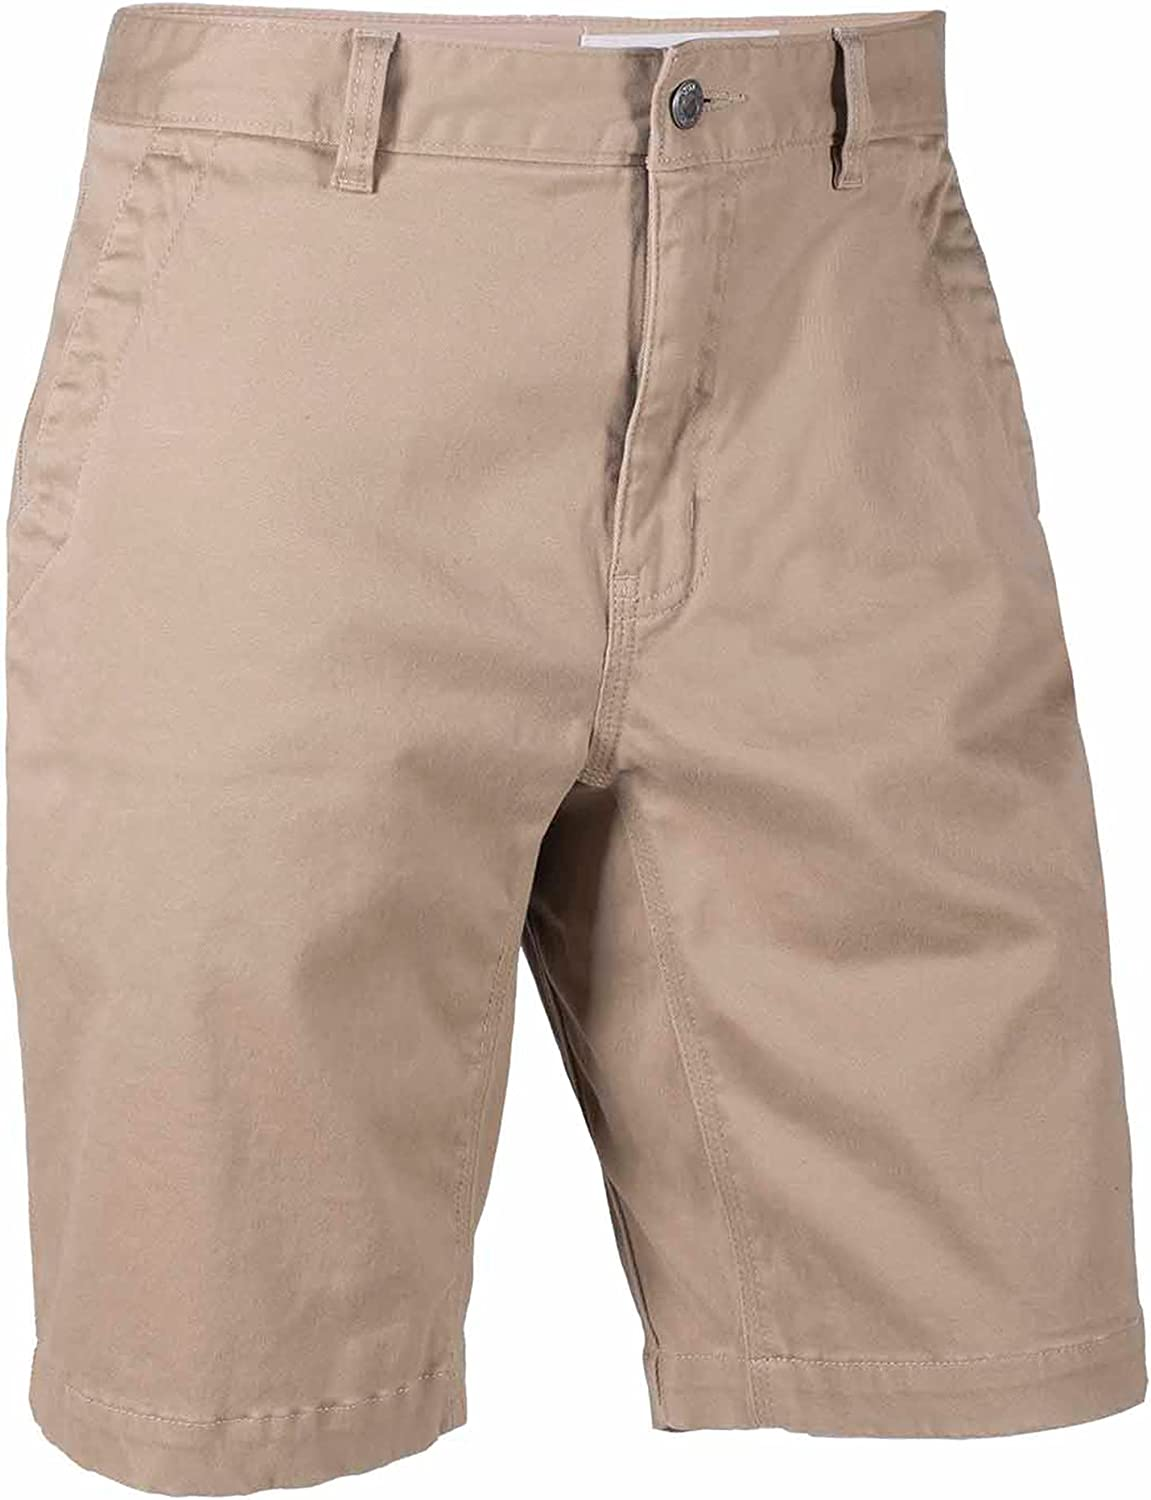 Mountain Khakis 2021 spring and summer new Men's Teton Fit Classic Max 86% OFF Short